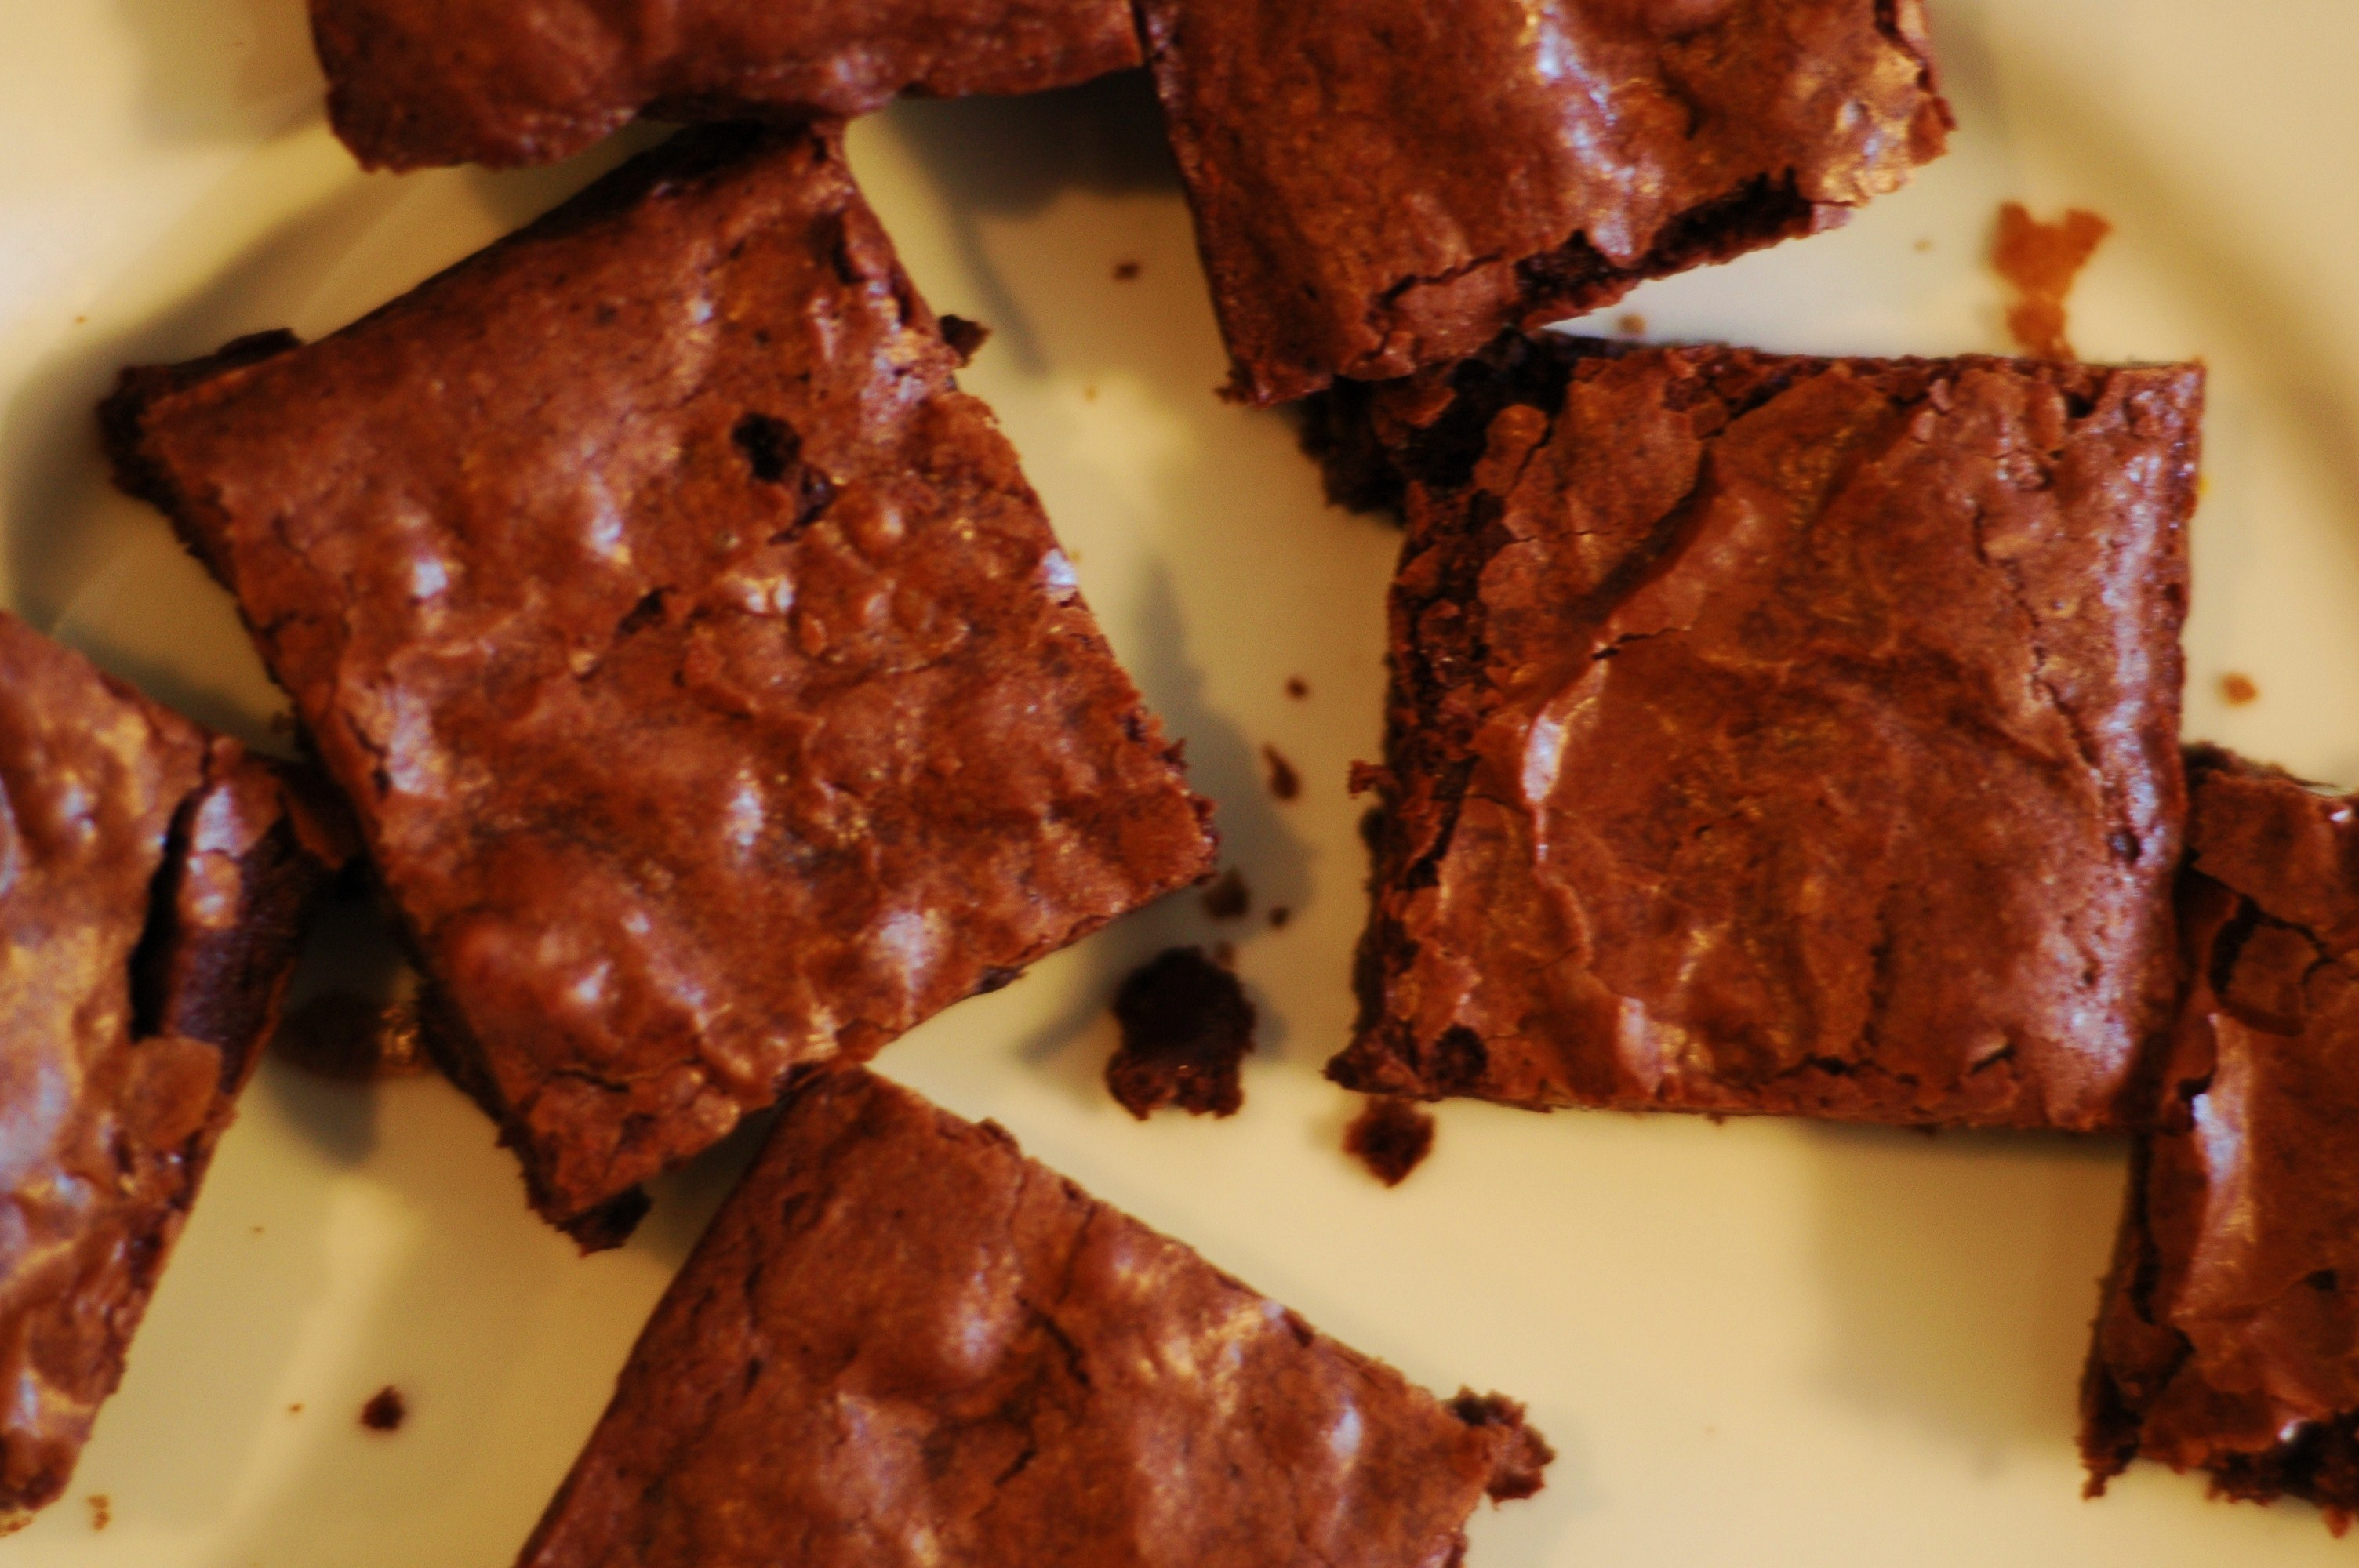 Cocoa Brownies with Browned Butter and Walnuts - but i'm hungry